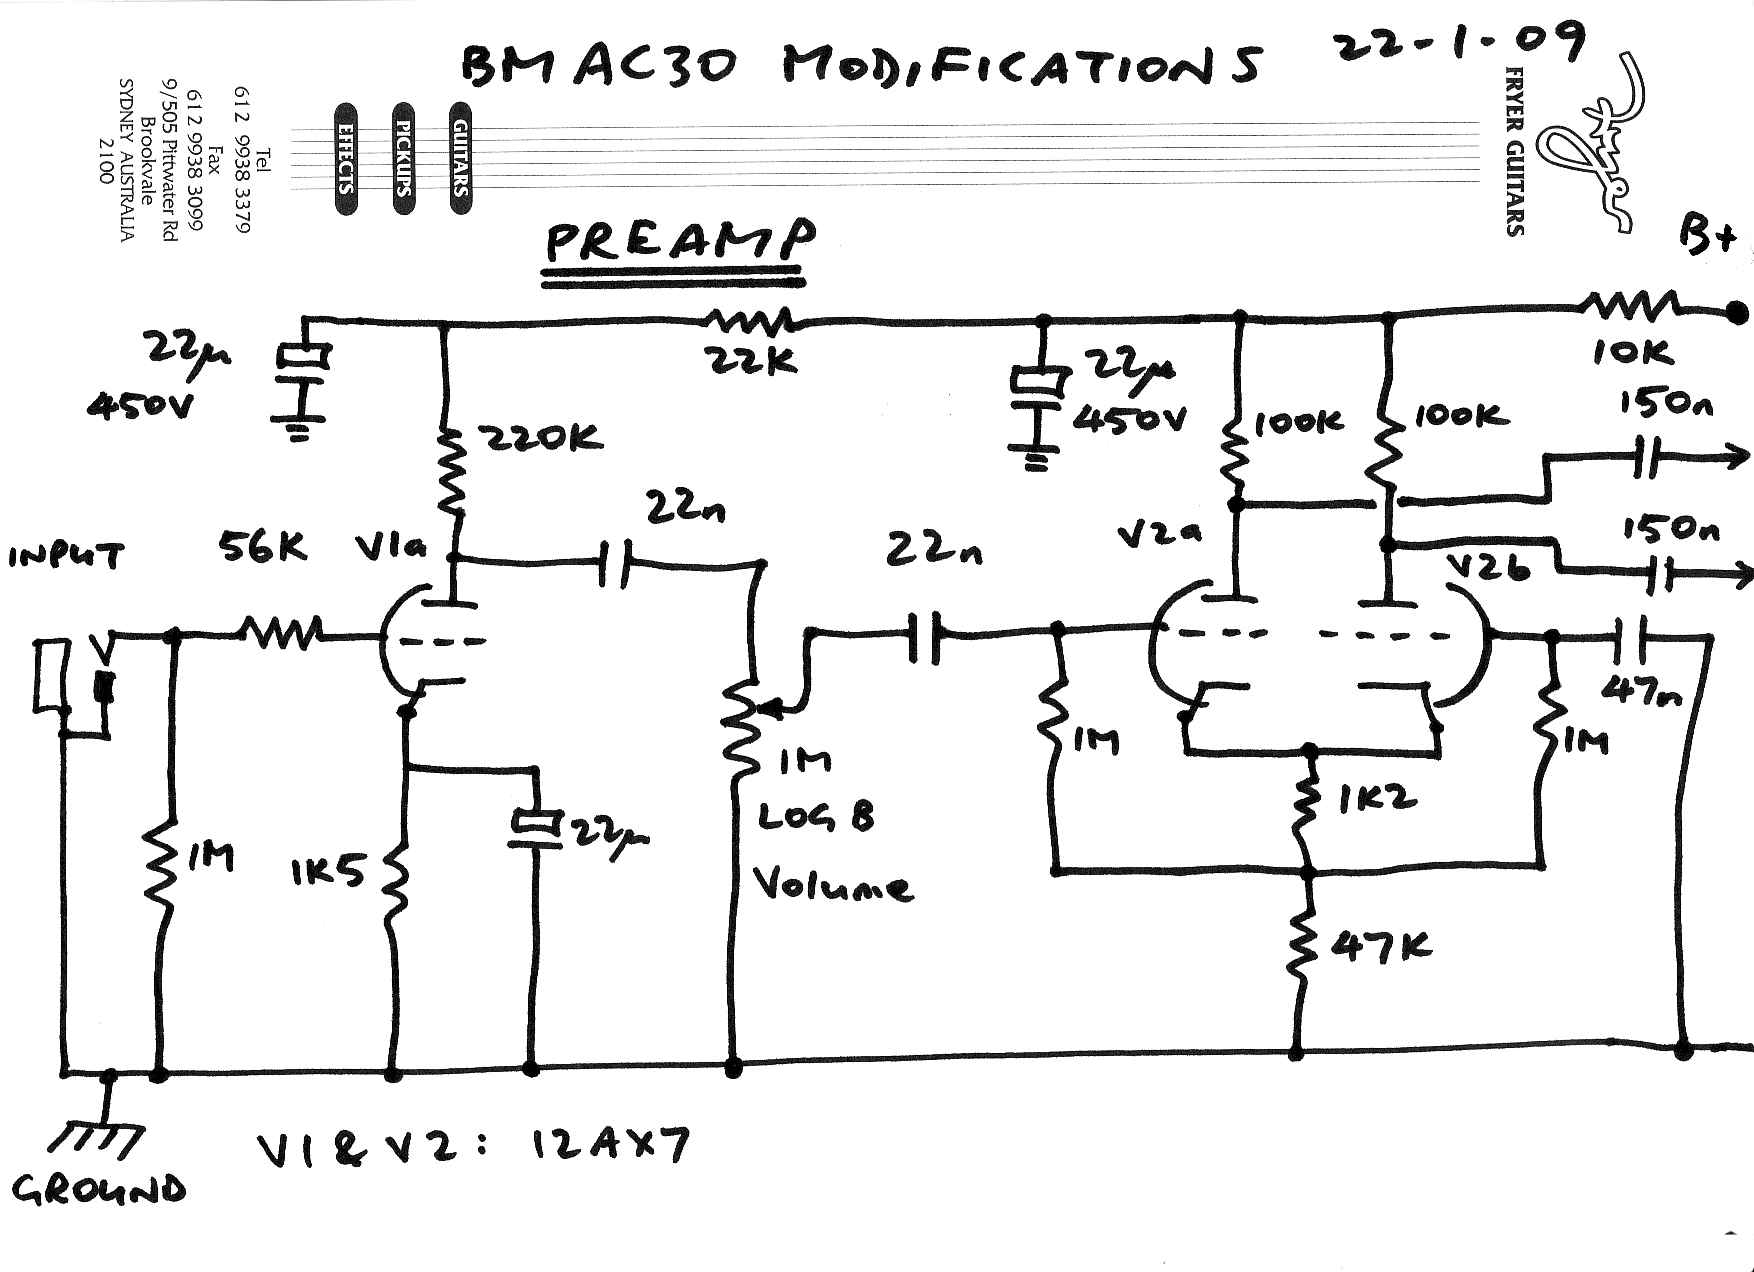 bm-ac30-schematic-preamp Ac Schematic on old vox, diy vox, vs dc30, vox amplug 2, ac15 vs, best tubes for vox, best settings for vox,